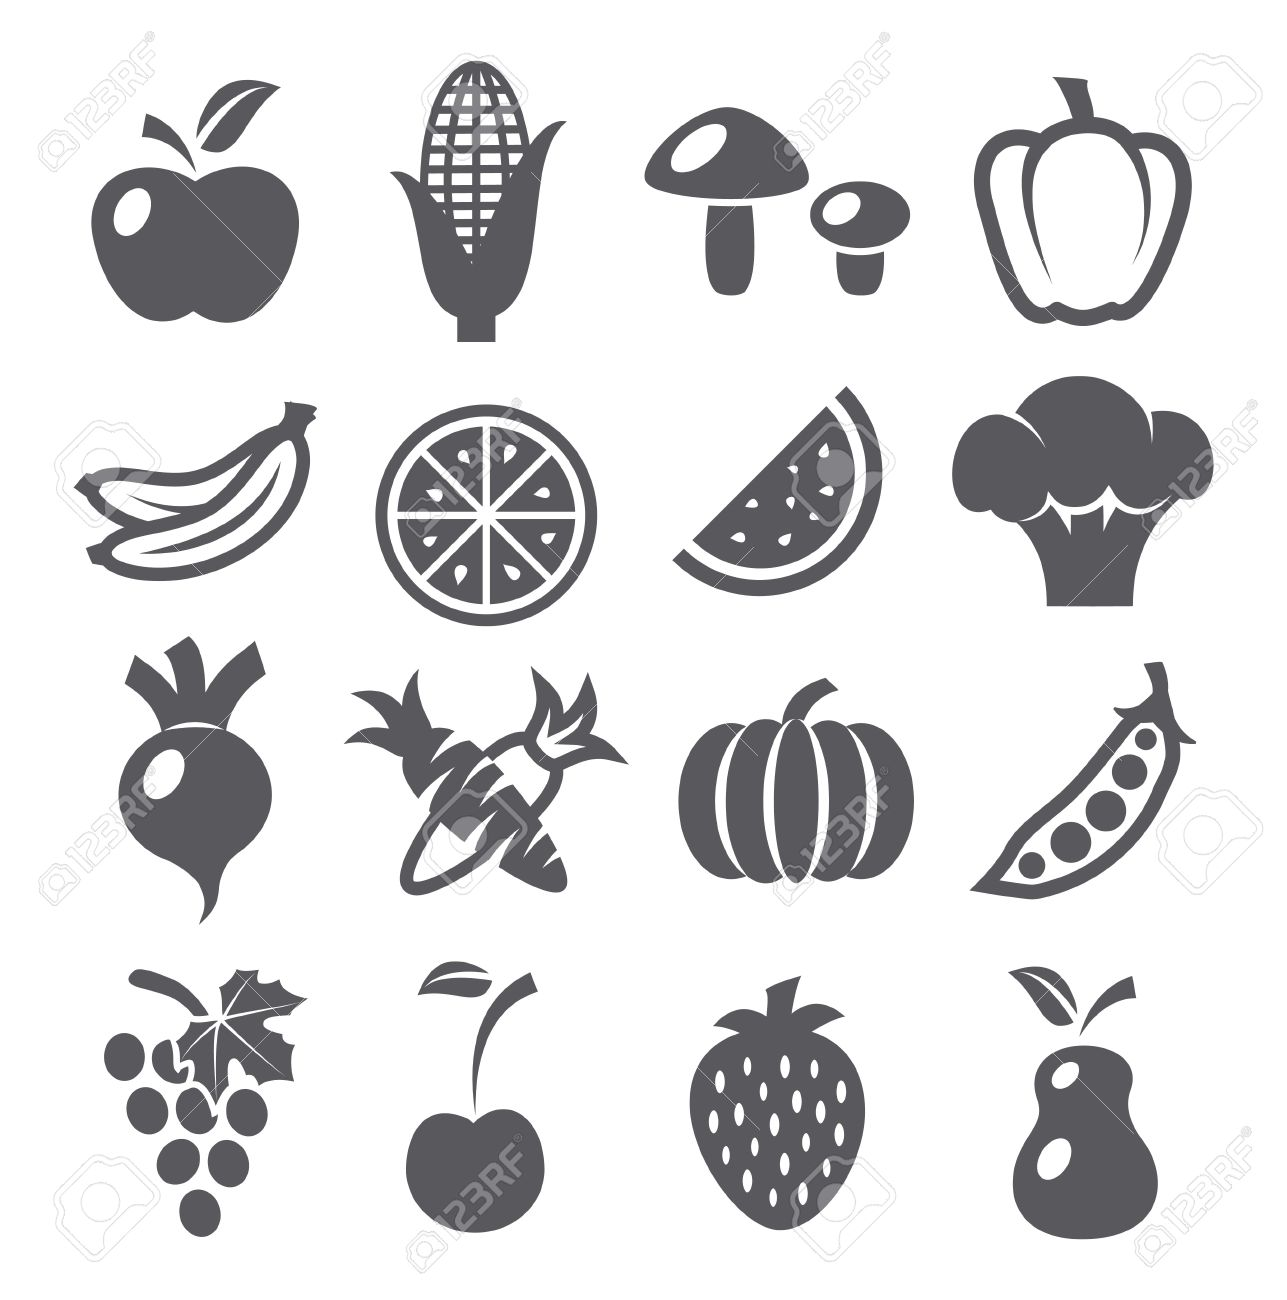 fruits and vegetables icons royalty free cliparts vectors and